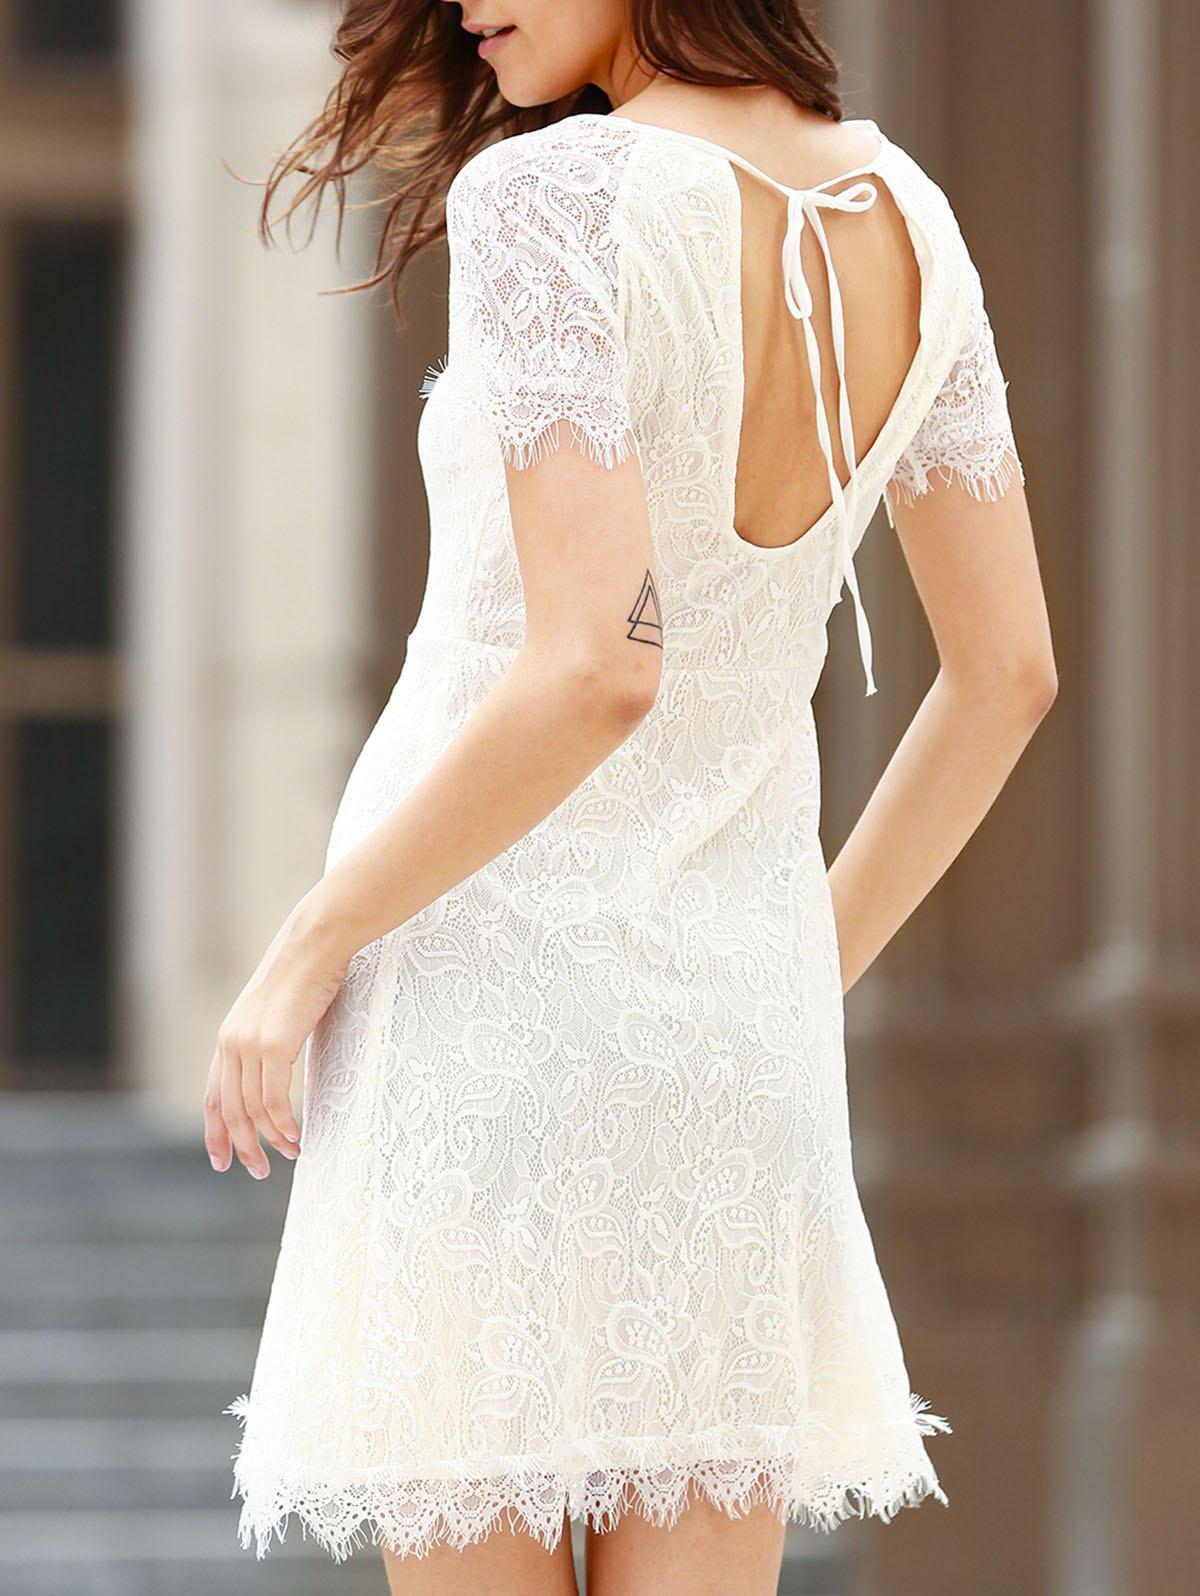 Chic Short Sleeve Scoop Neck Cut Out Women's Lace Dress - WHITE L